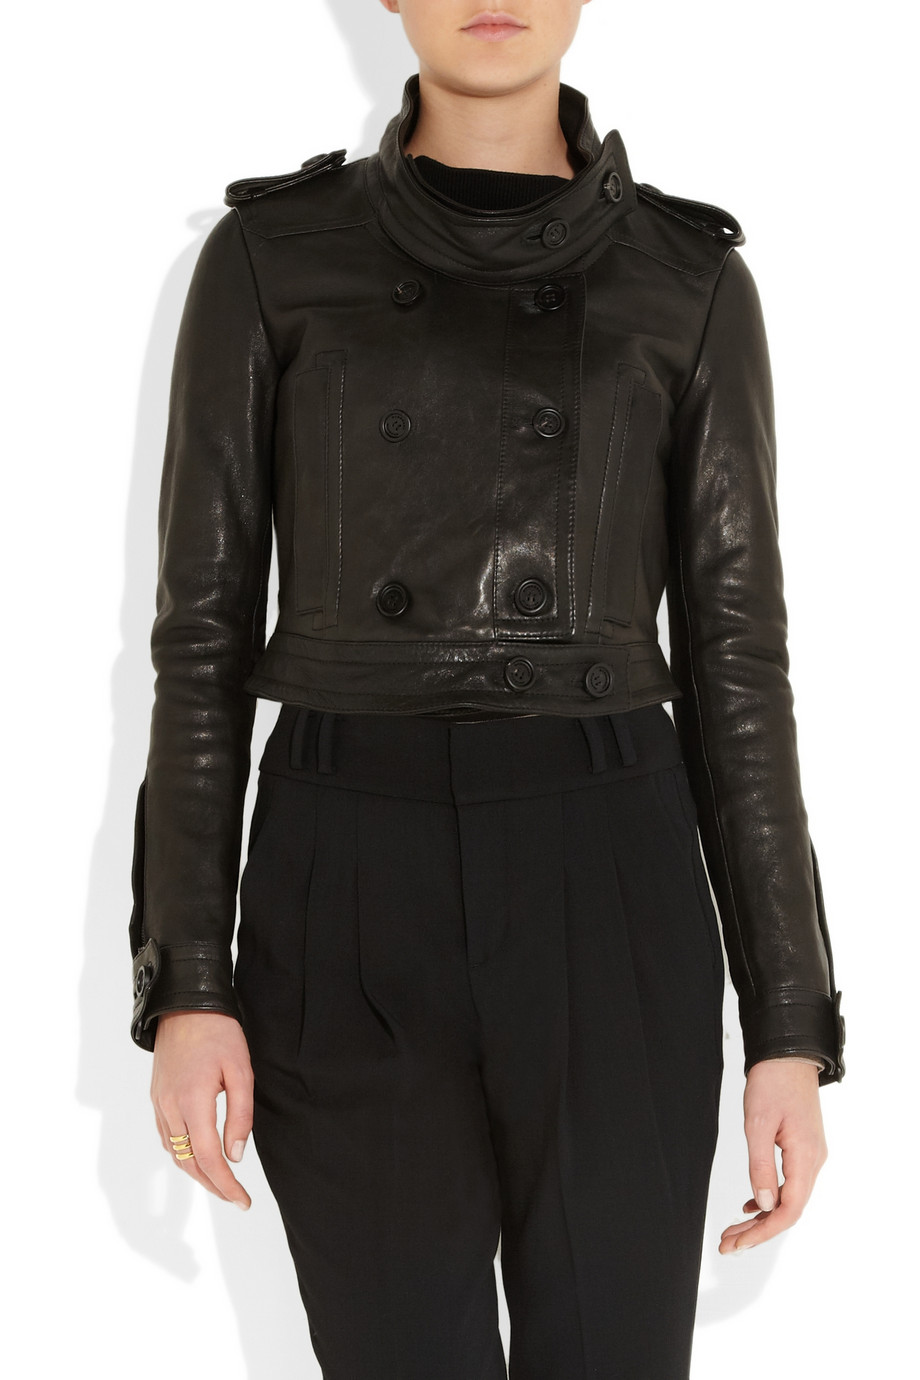 Burberry Prorsum Cropped leather biker jacket – 60% at THE OUTNET.COM